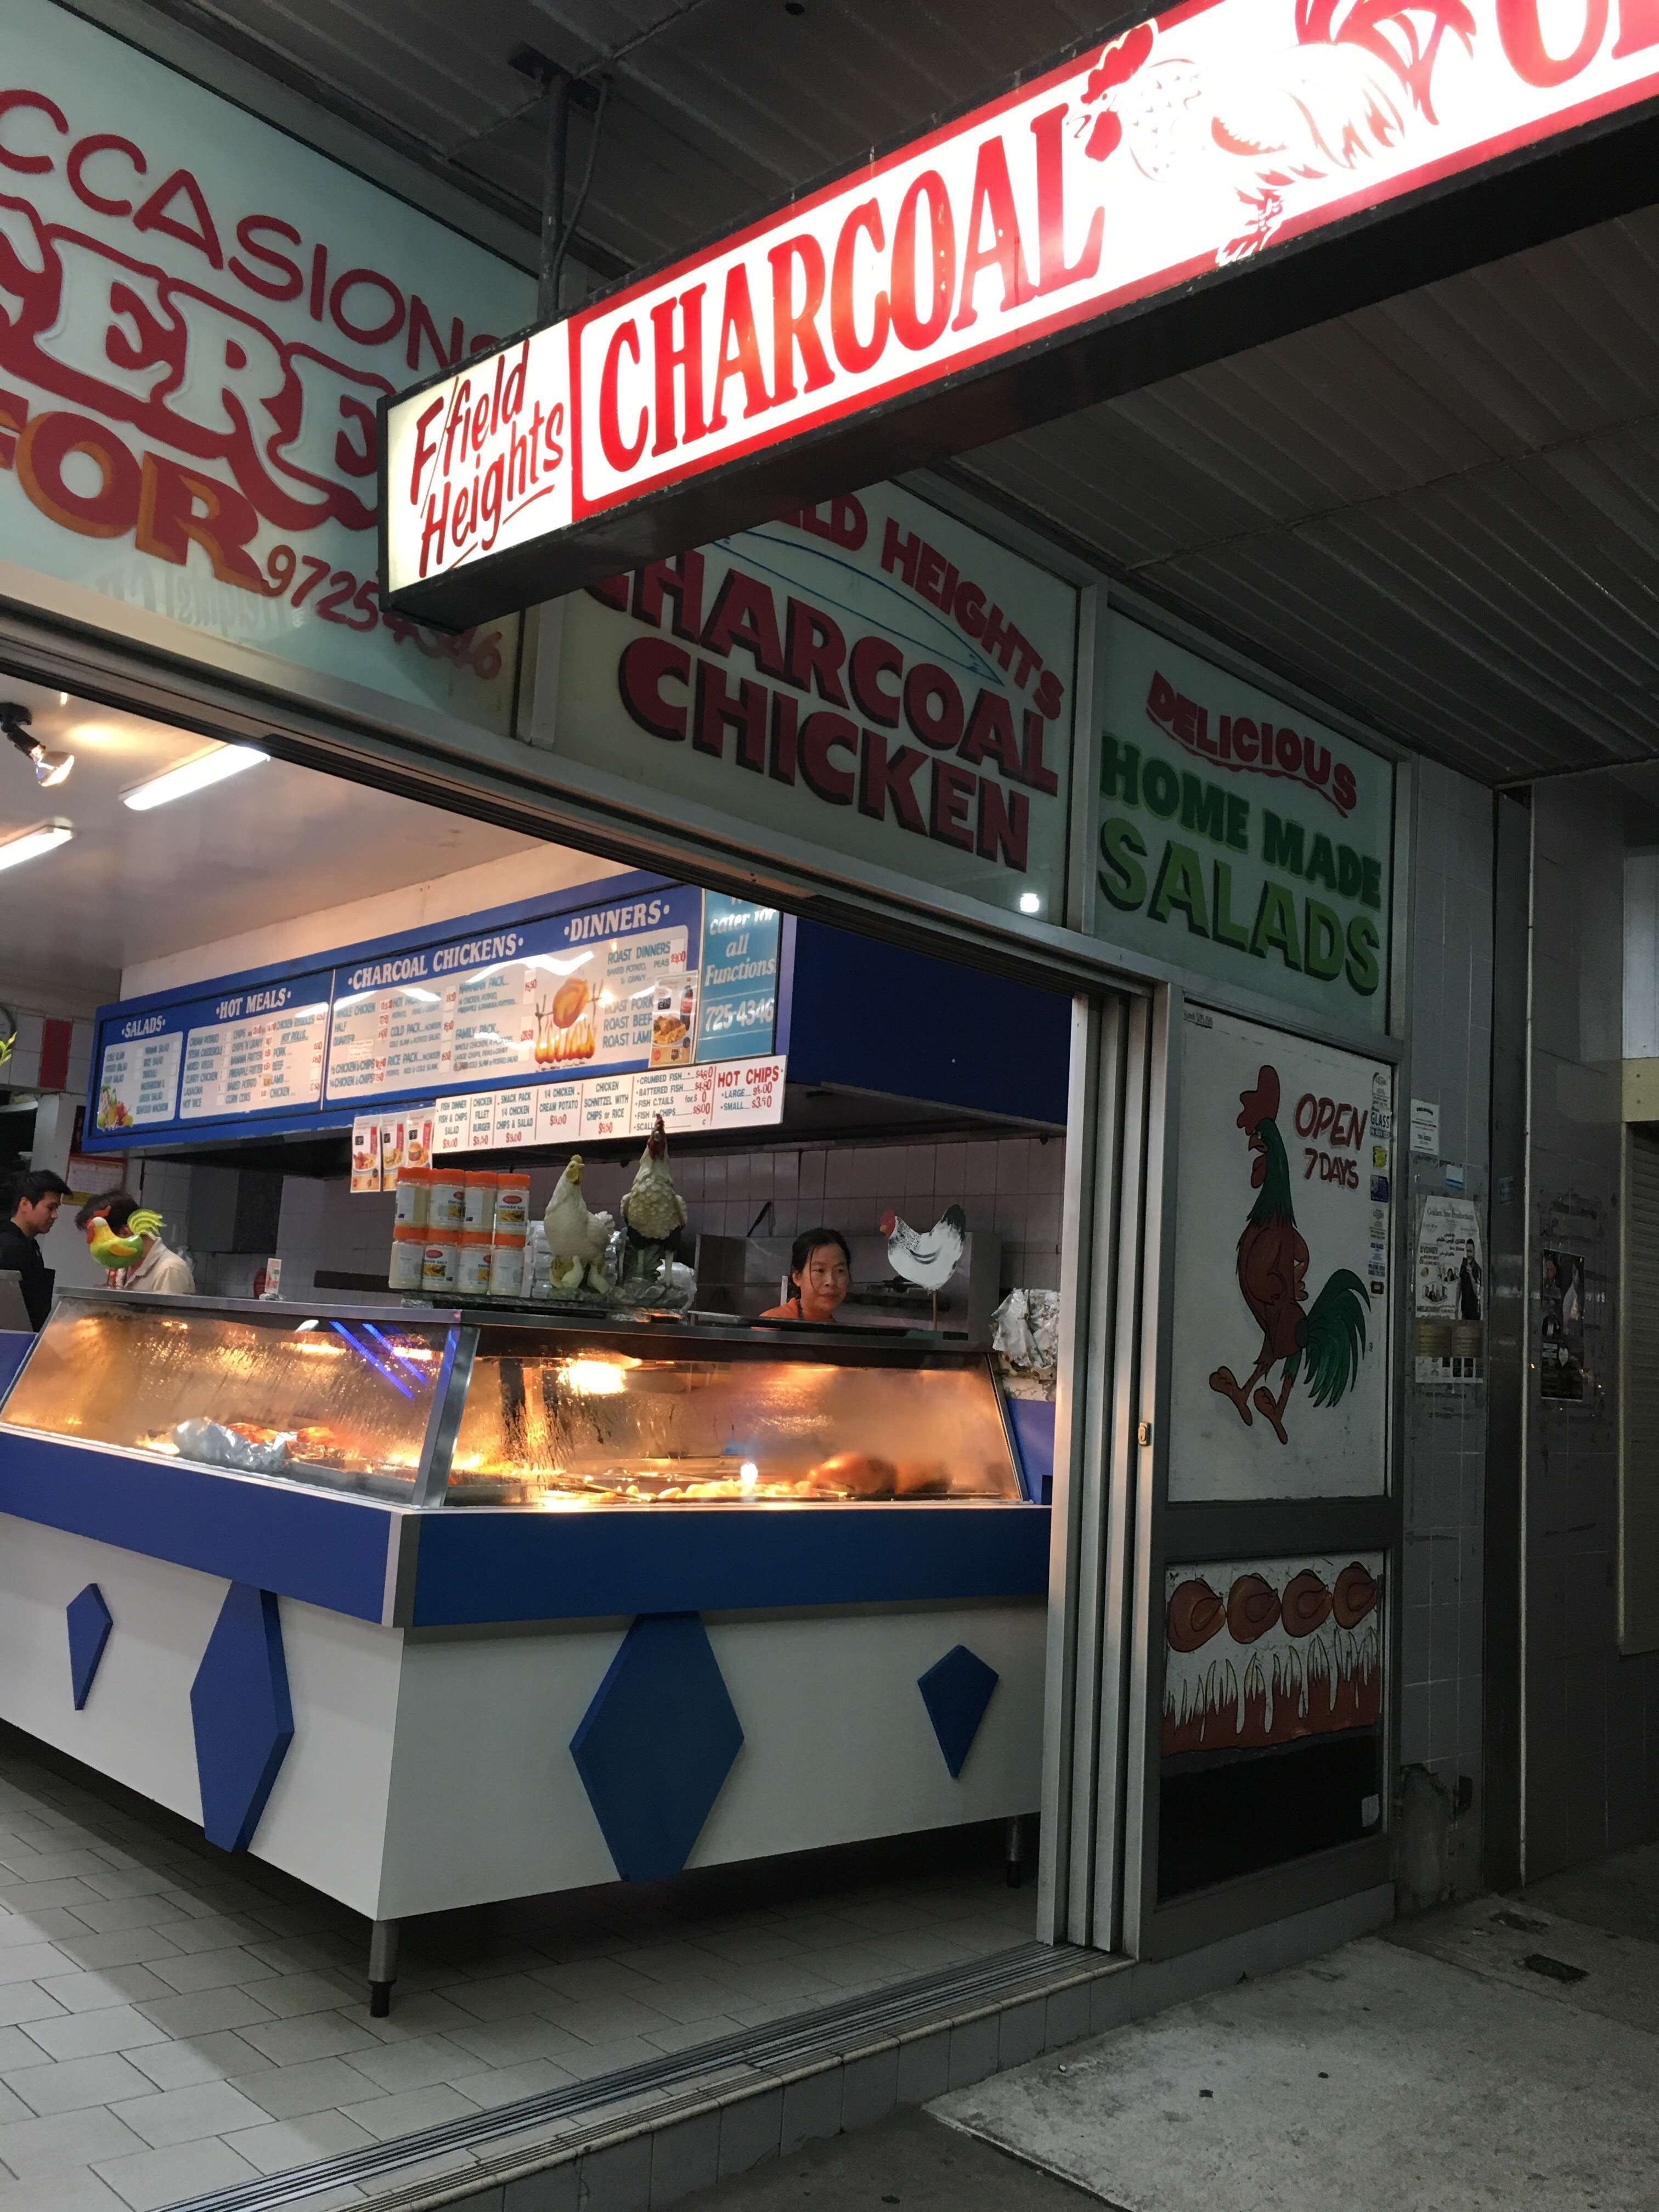 Fairfield Heights Charcoal Chicken - Sydney Tourism